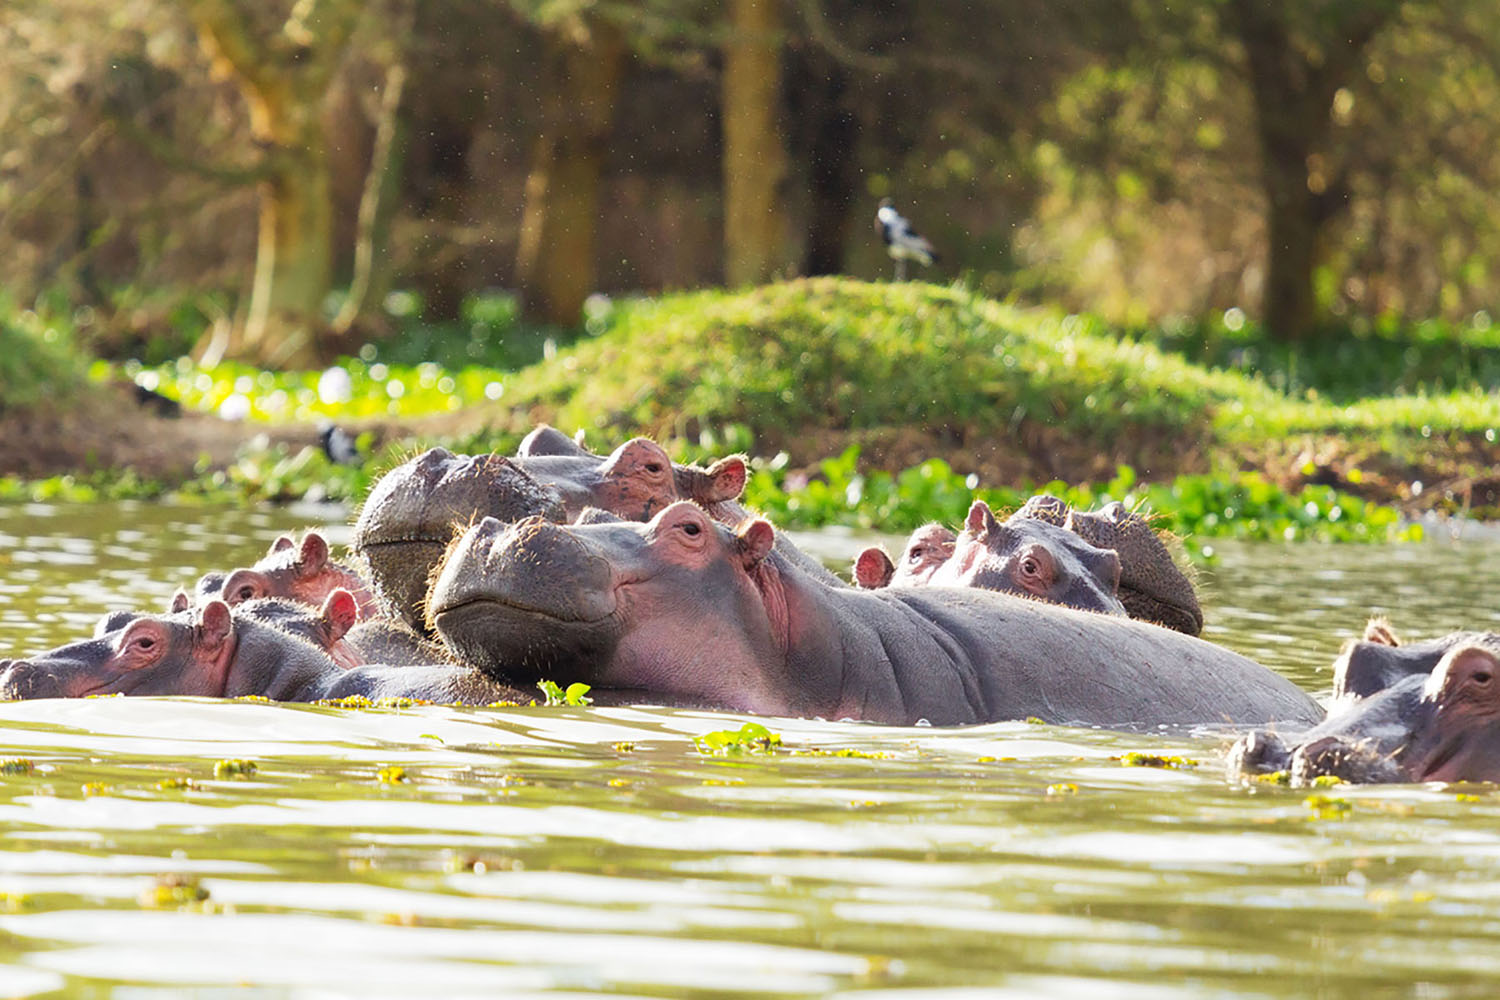 A group of hippos in a lake.